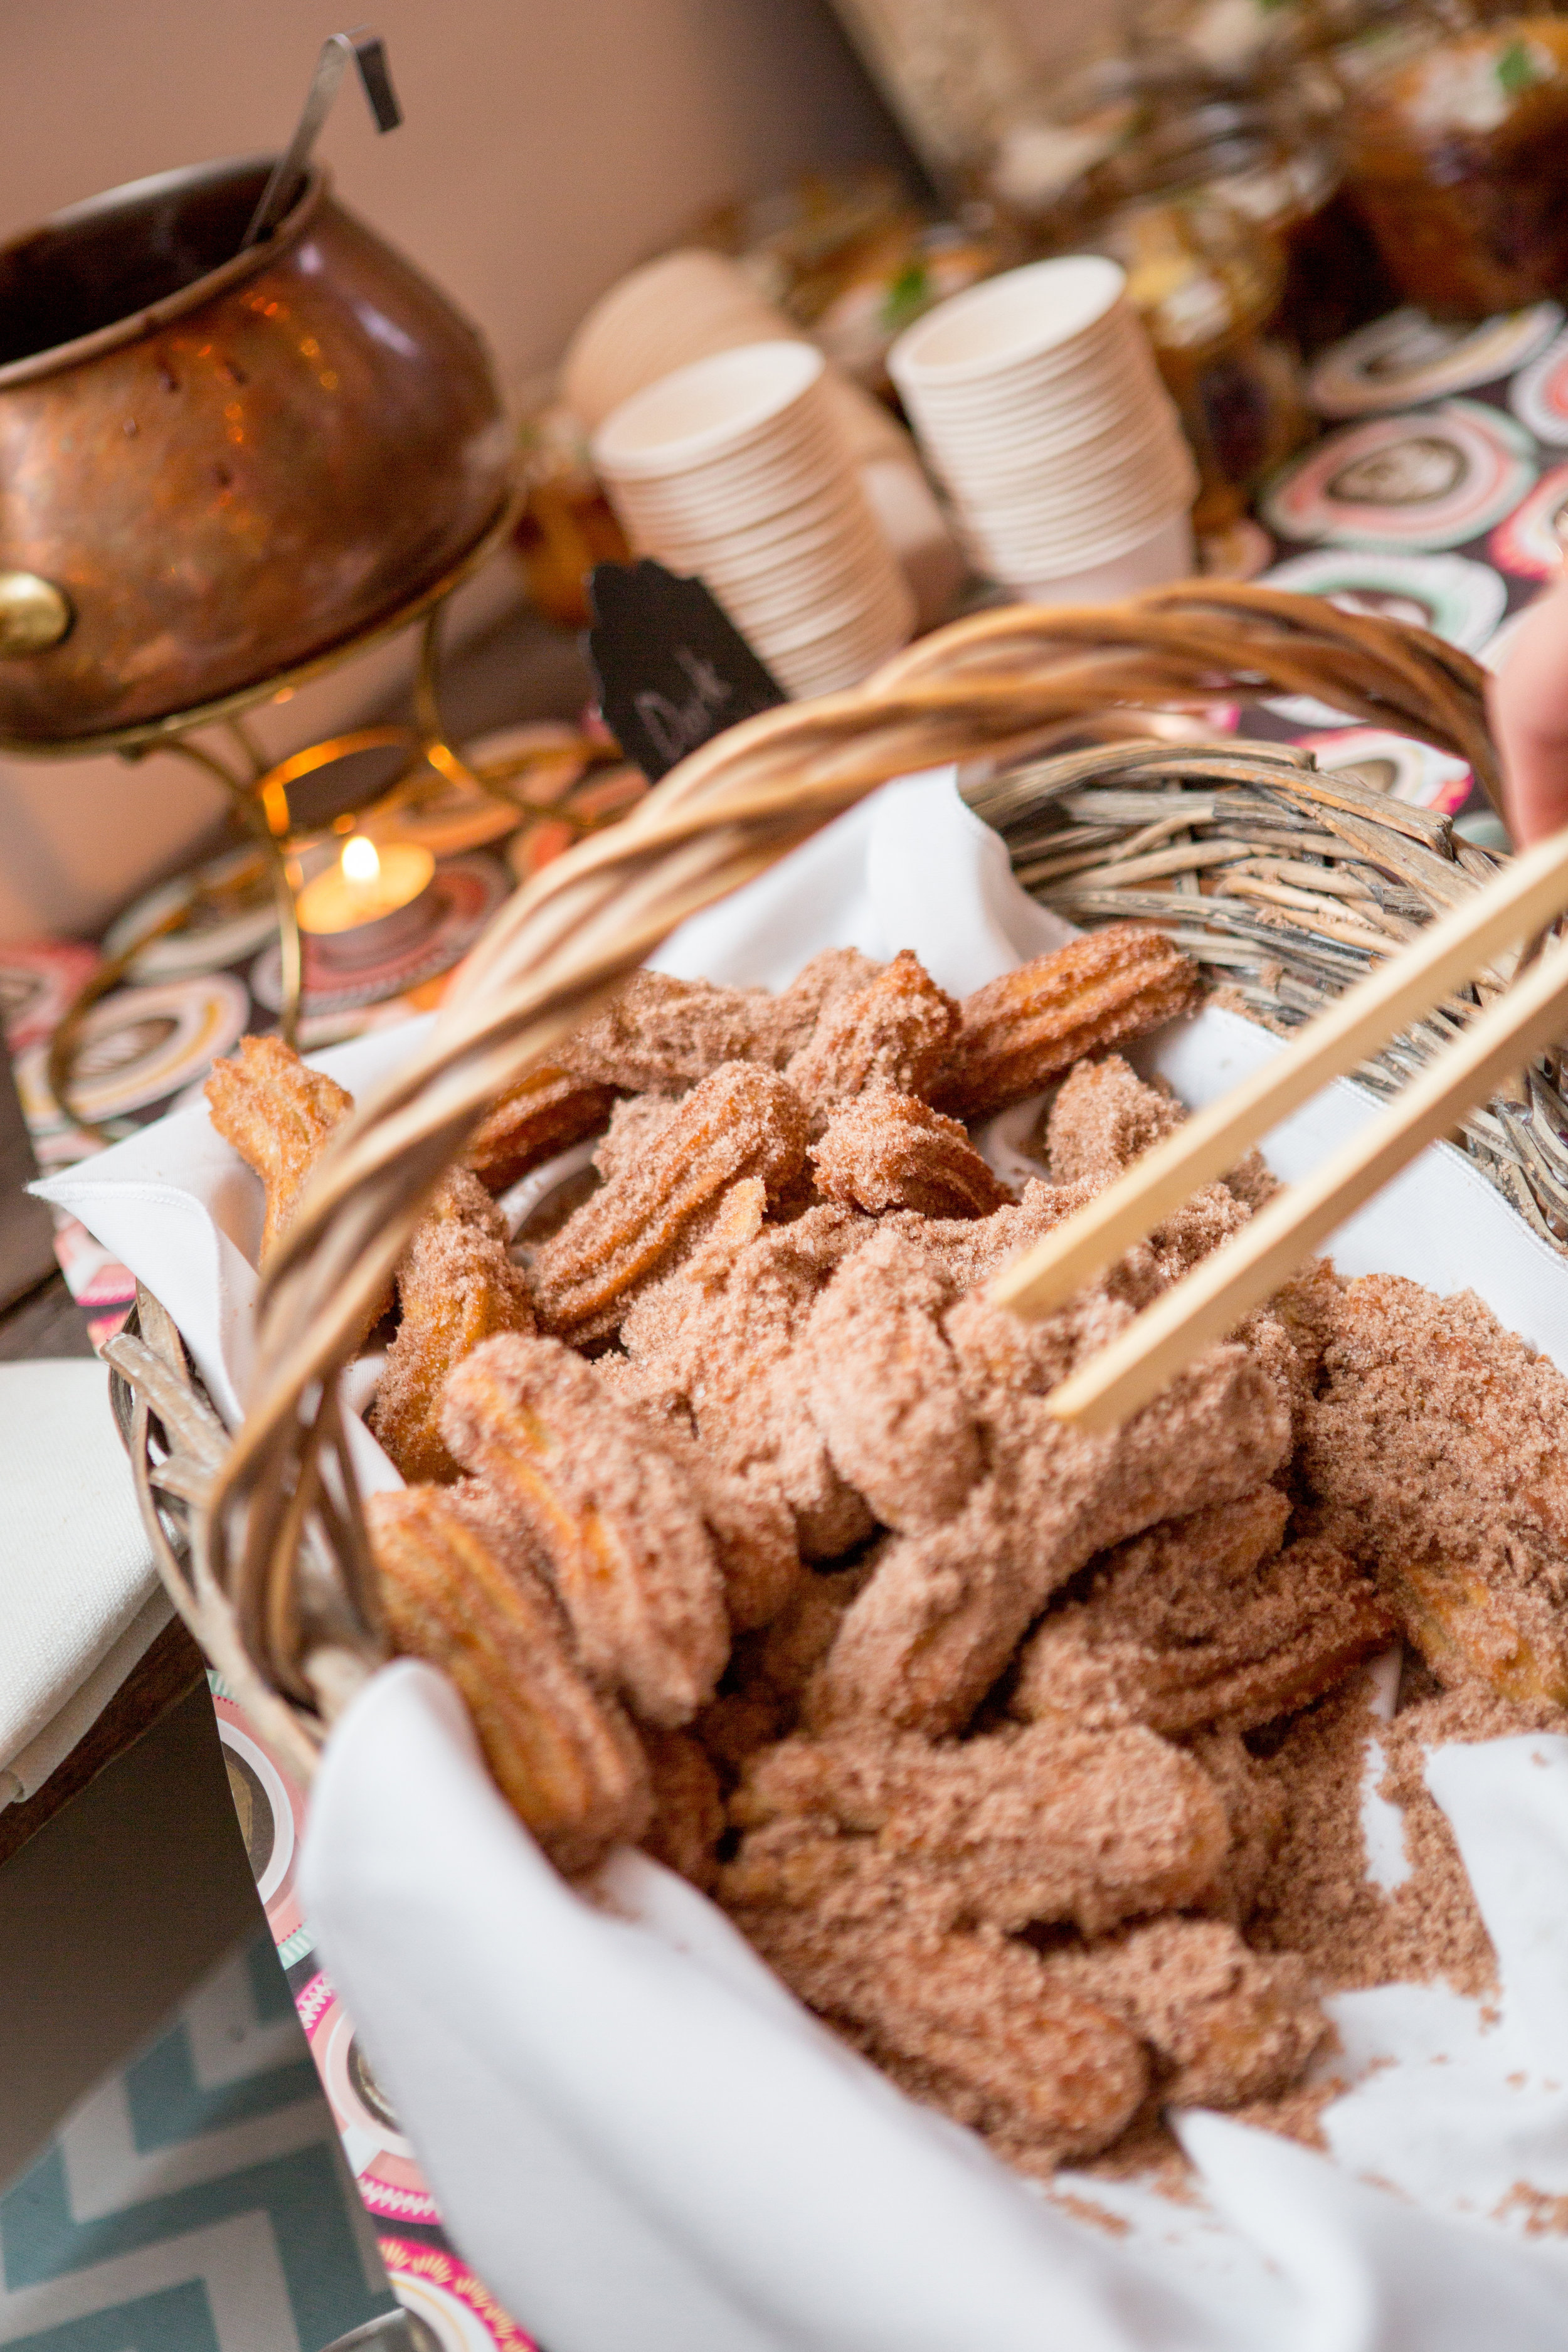 santabarbarawedding.com | Feast & Fest Catering | Brownies in a Basket Dessert | Michael and Anna Costa Photographers